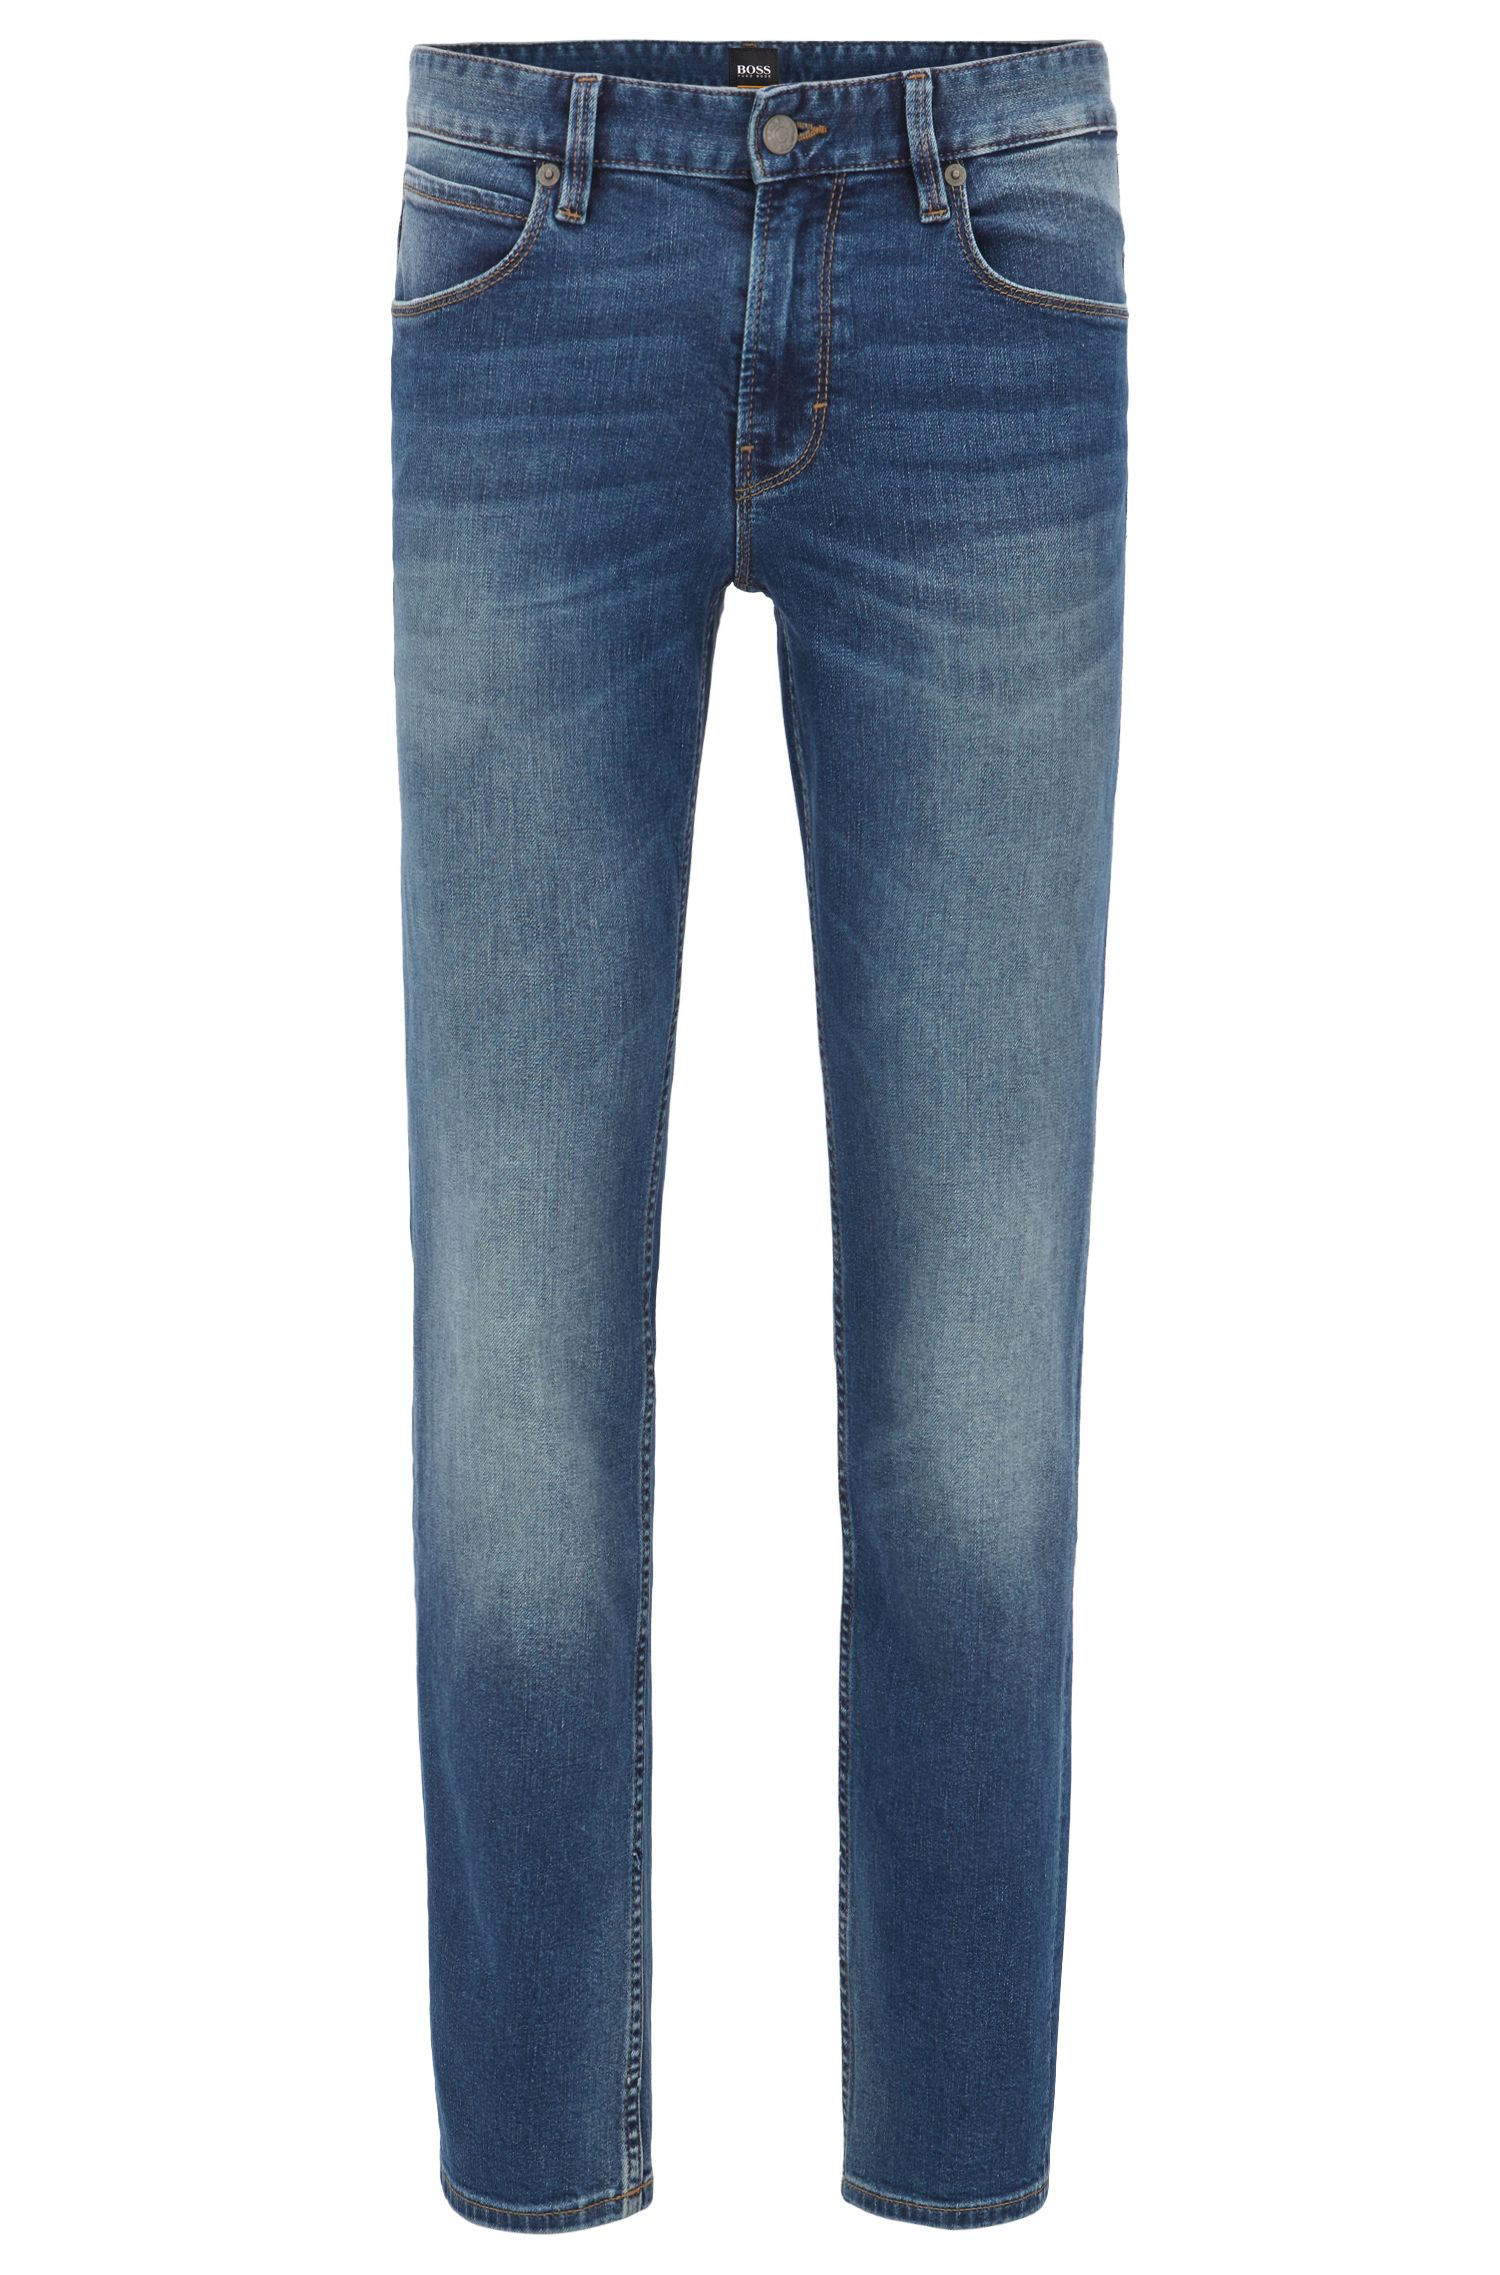 Jeans Slim Fit en denim indigo lavé